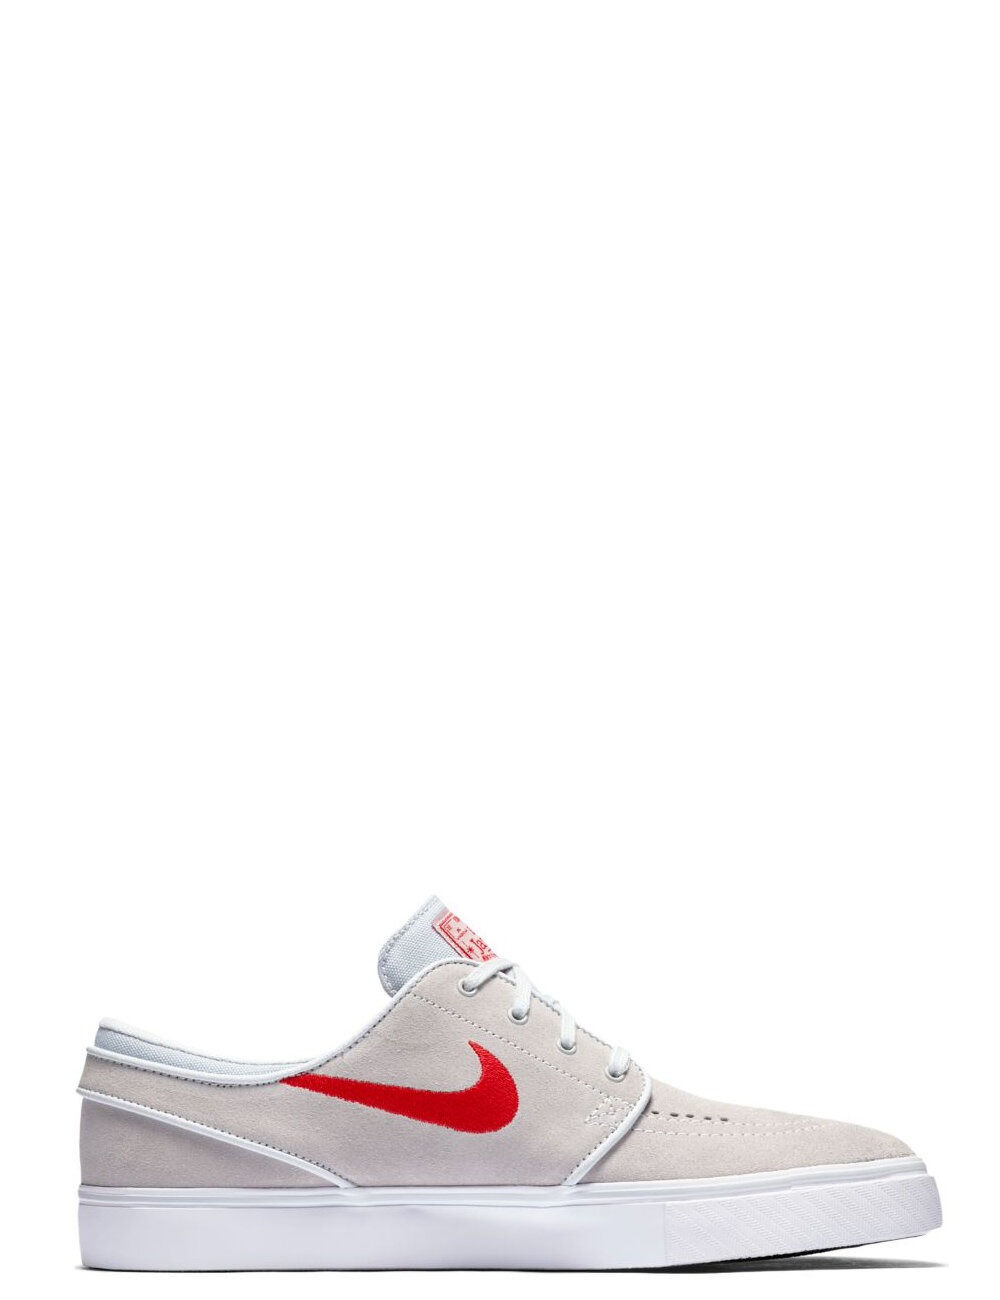 cheap for discount 499c7 a453f ZOOM JANOSKI - PURE PLAT UNI RED BLK WHT - FOOTWEAR-MENS-SHOES   Online  Surf, Skate   Streetwear Clothing NZ   Backdoor - NIKE S17